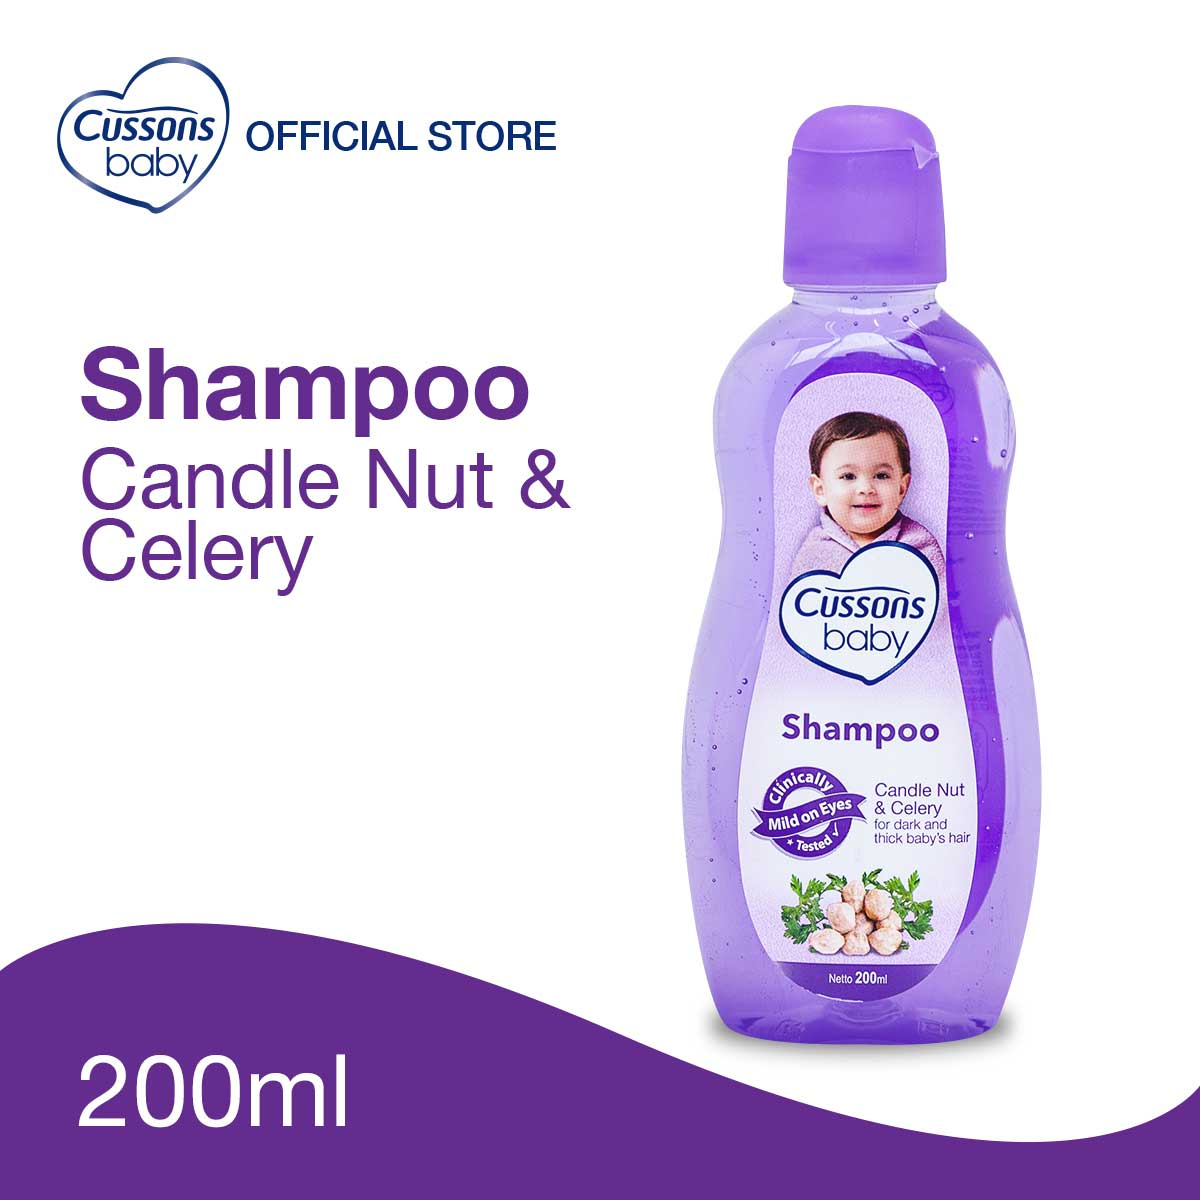 Cussons Baby Shampoo Candle Nut & Celery 200ml